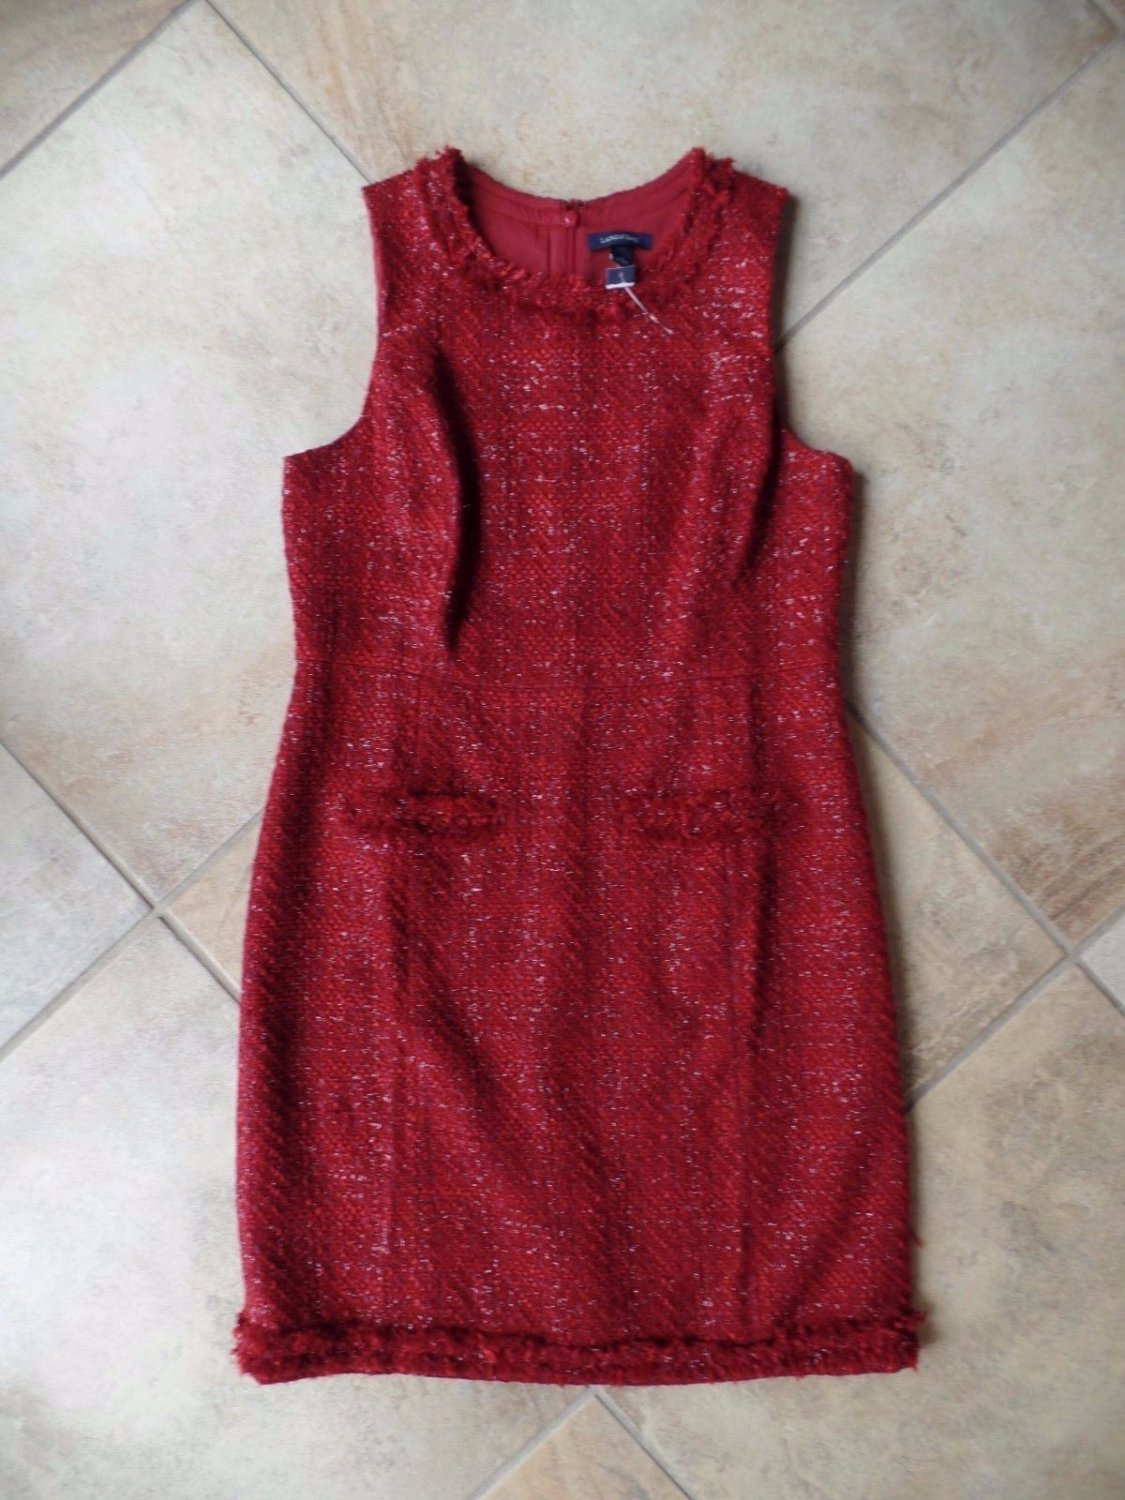 NWT LANDS END Red Sleeveless Classic Tweed Sheath Dress 12